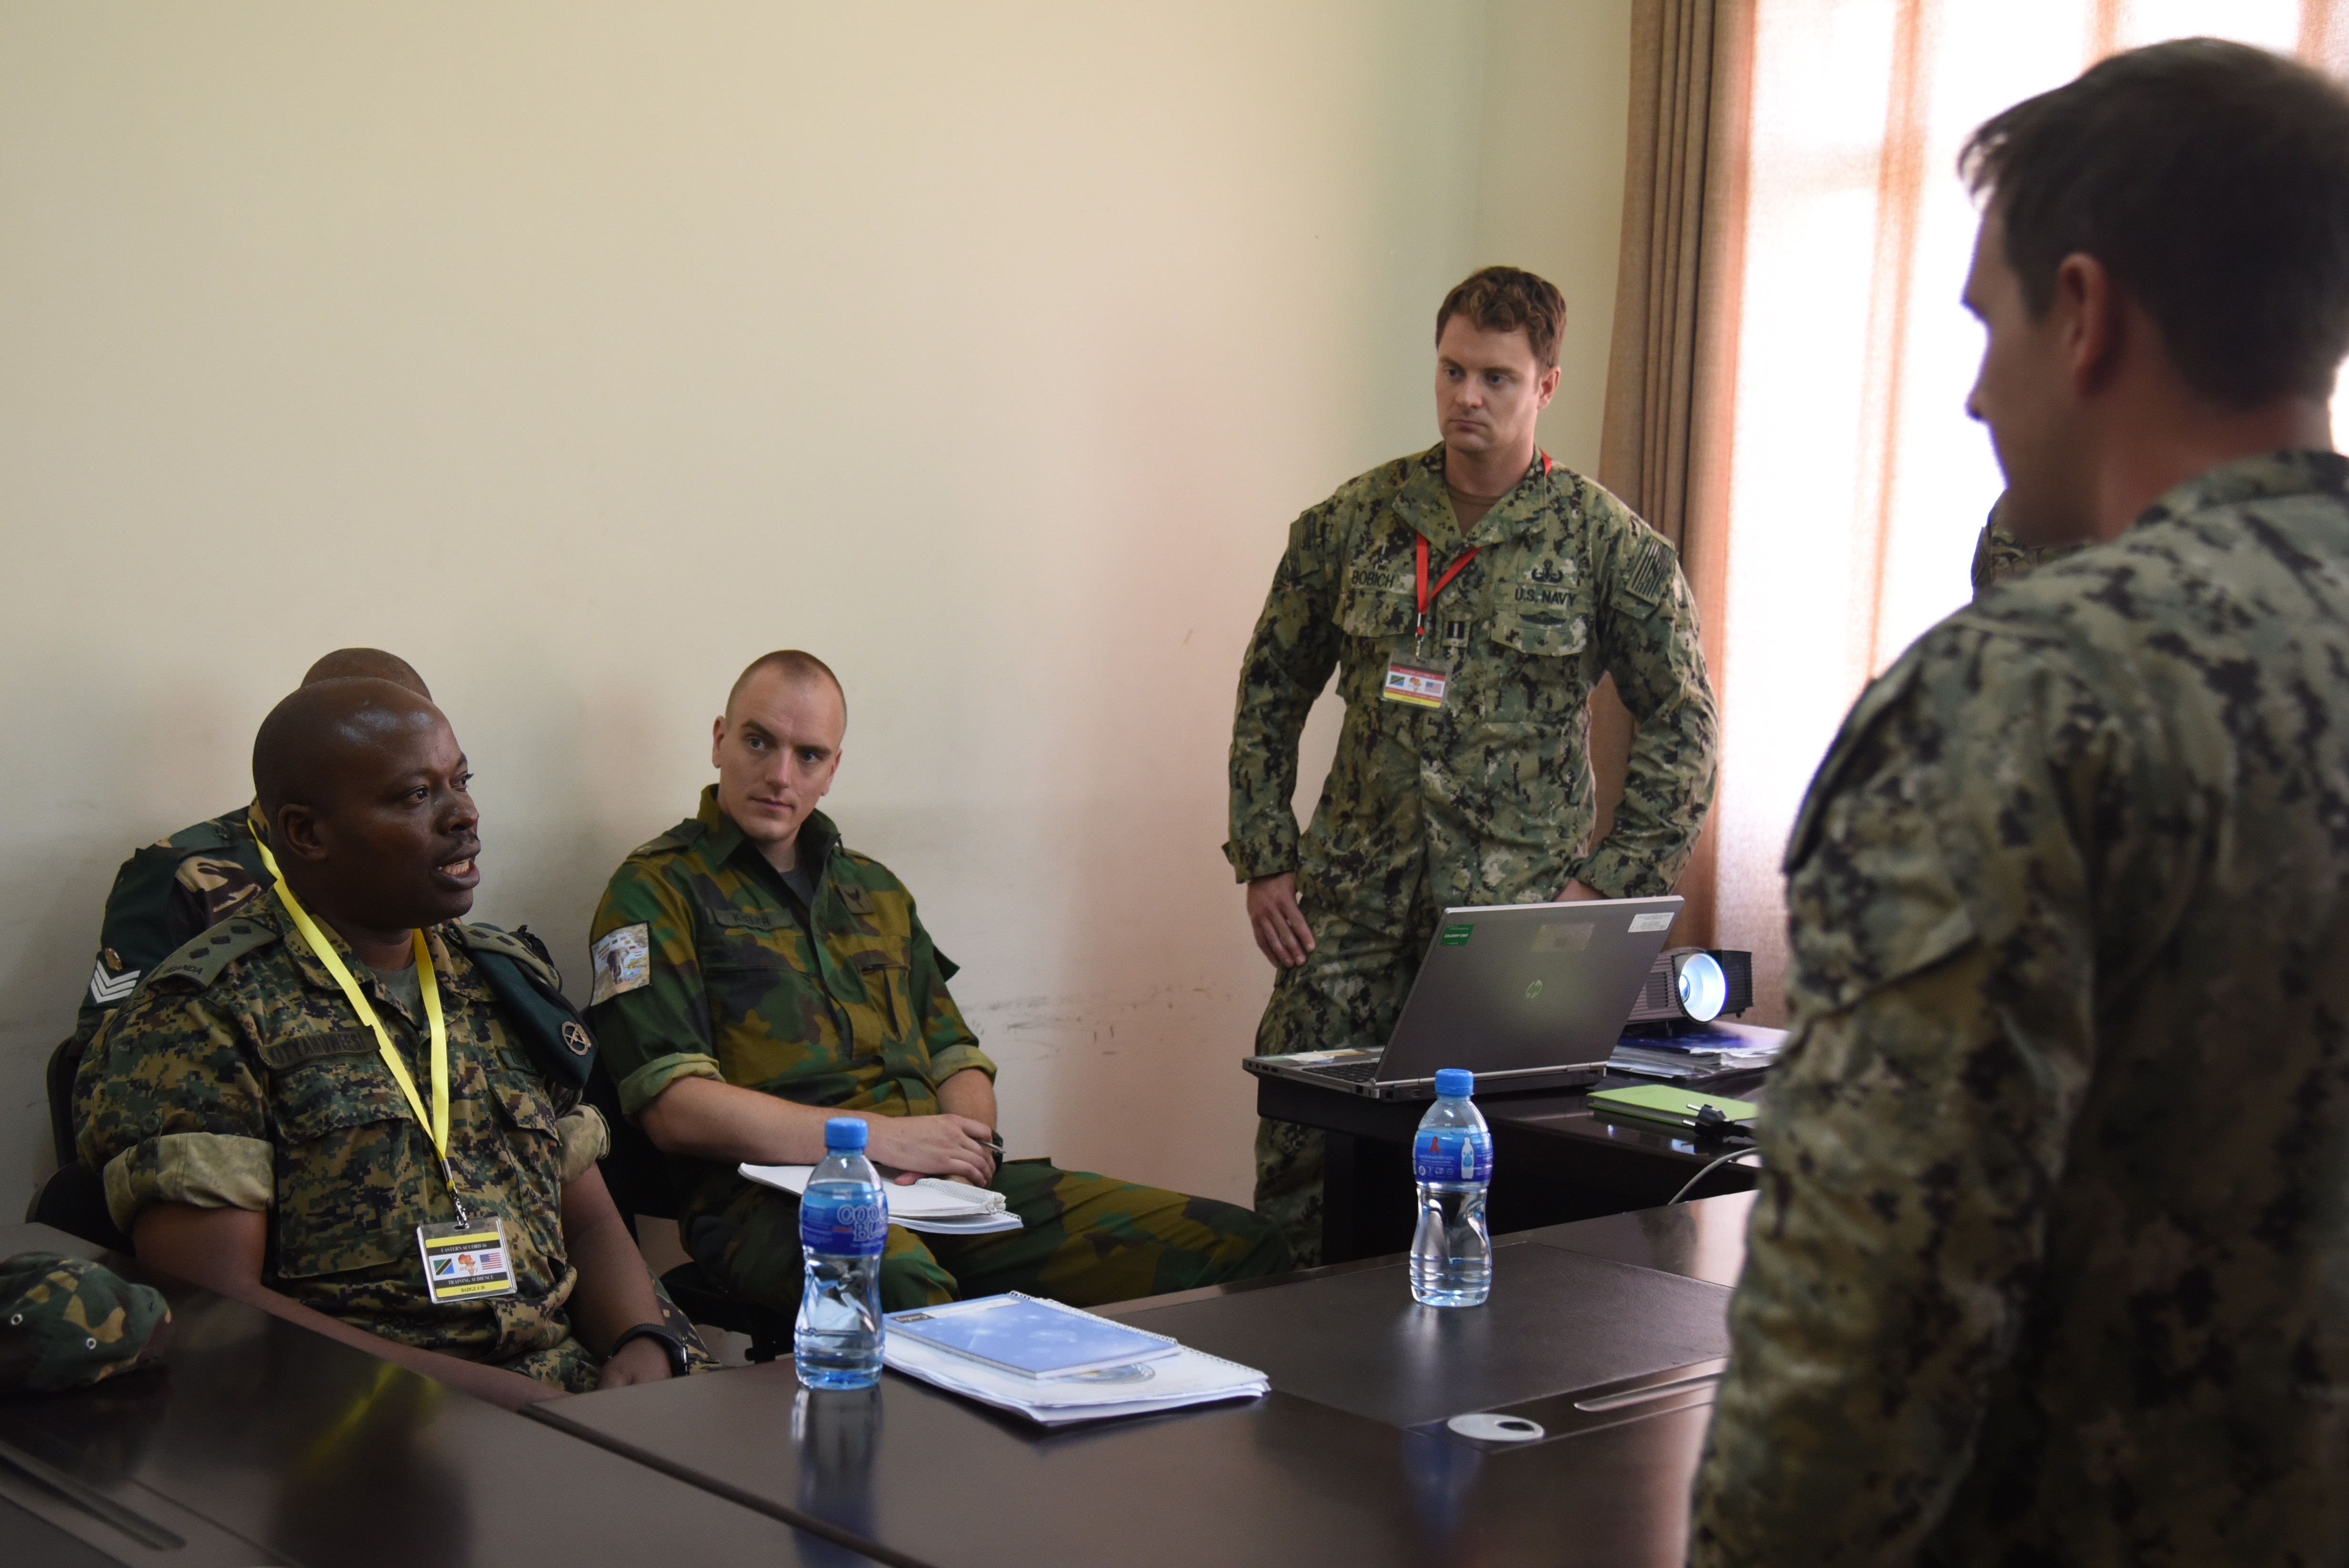 DAR ES SALAAM, Tanzania – Eastern Accord 2016 participants attend a counter-improvised explosive device course on July 14, 2016, to effectively learn how to combat IEDs at the operational level during academics training at the Tanzanian Peacekeeping Training Centre in Dar es Salaam, Tanzania. EA16 is an annual, combined, joint military exercise that brings together partner nations to practice and demonstrate proficiency in conducting peacekeeping operations. (U.S. Air Force photo by Staff Sgt. Tiffany DeNault)